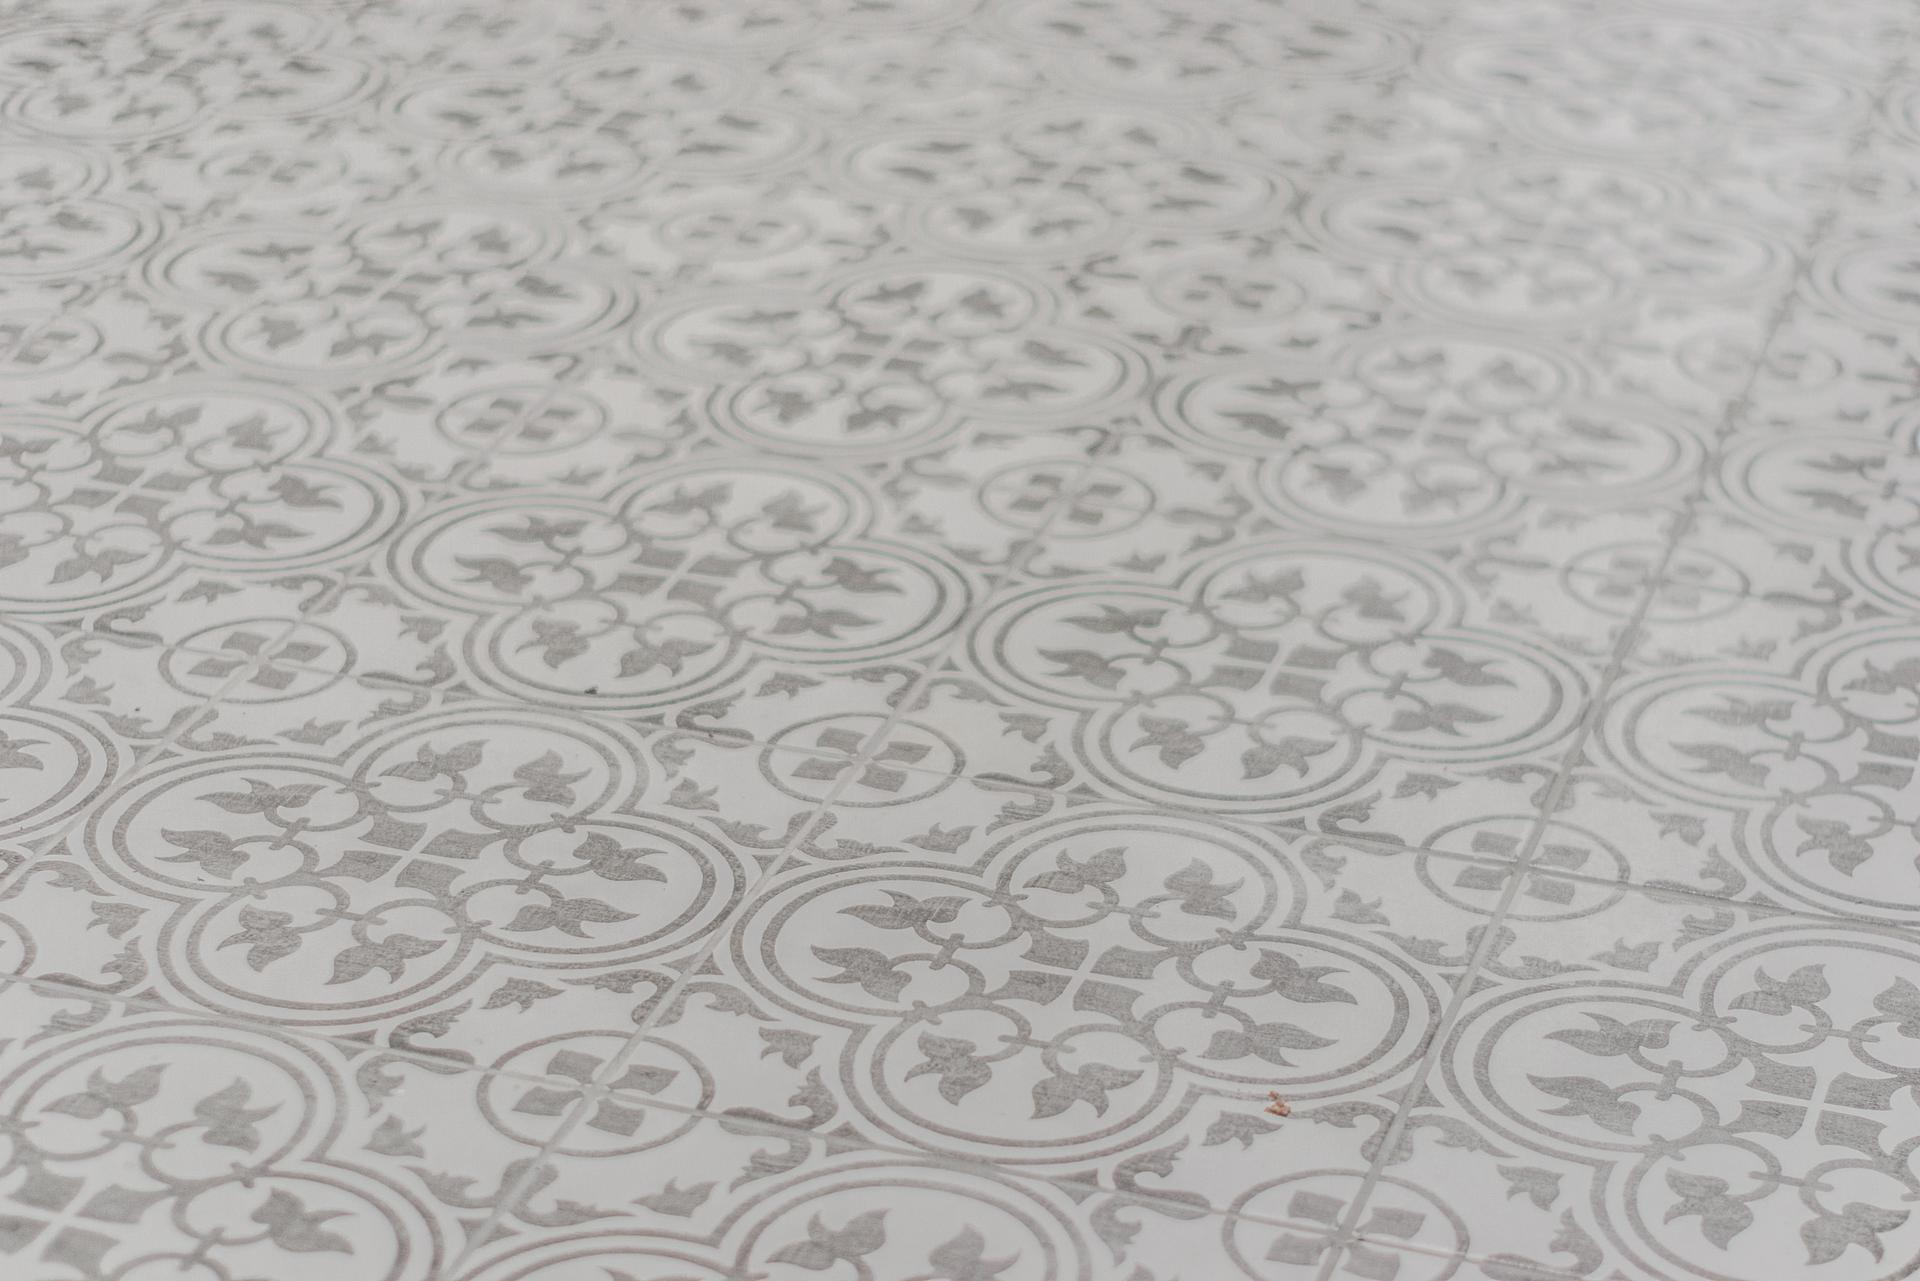 Caviness & Cates Decorative Tile In Your Home